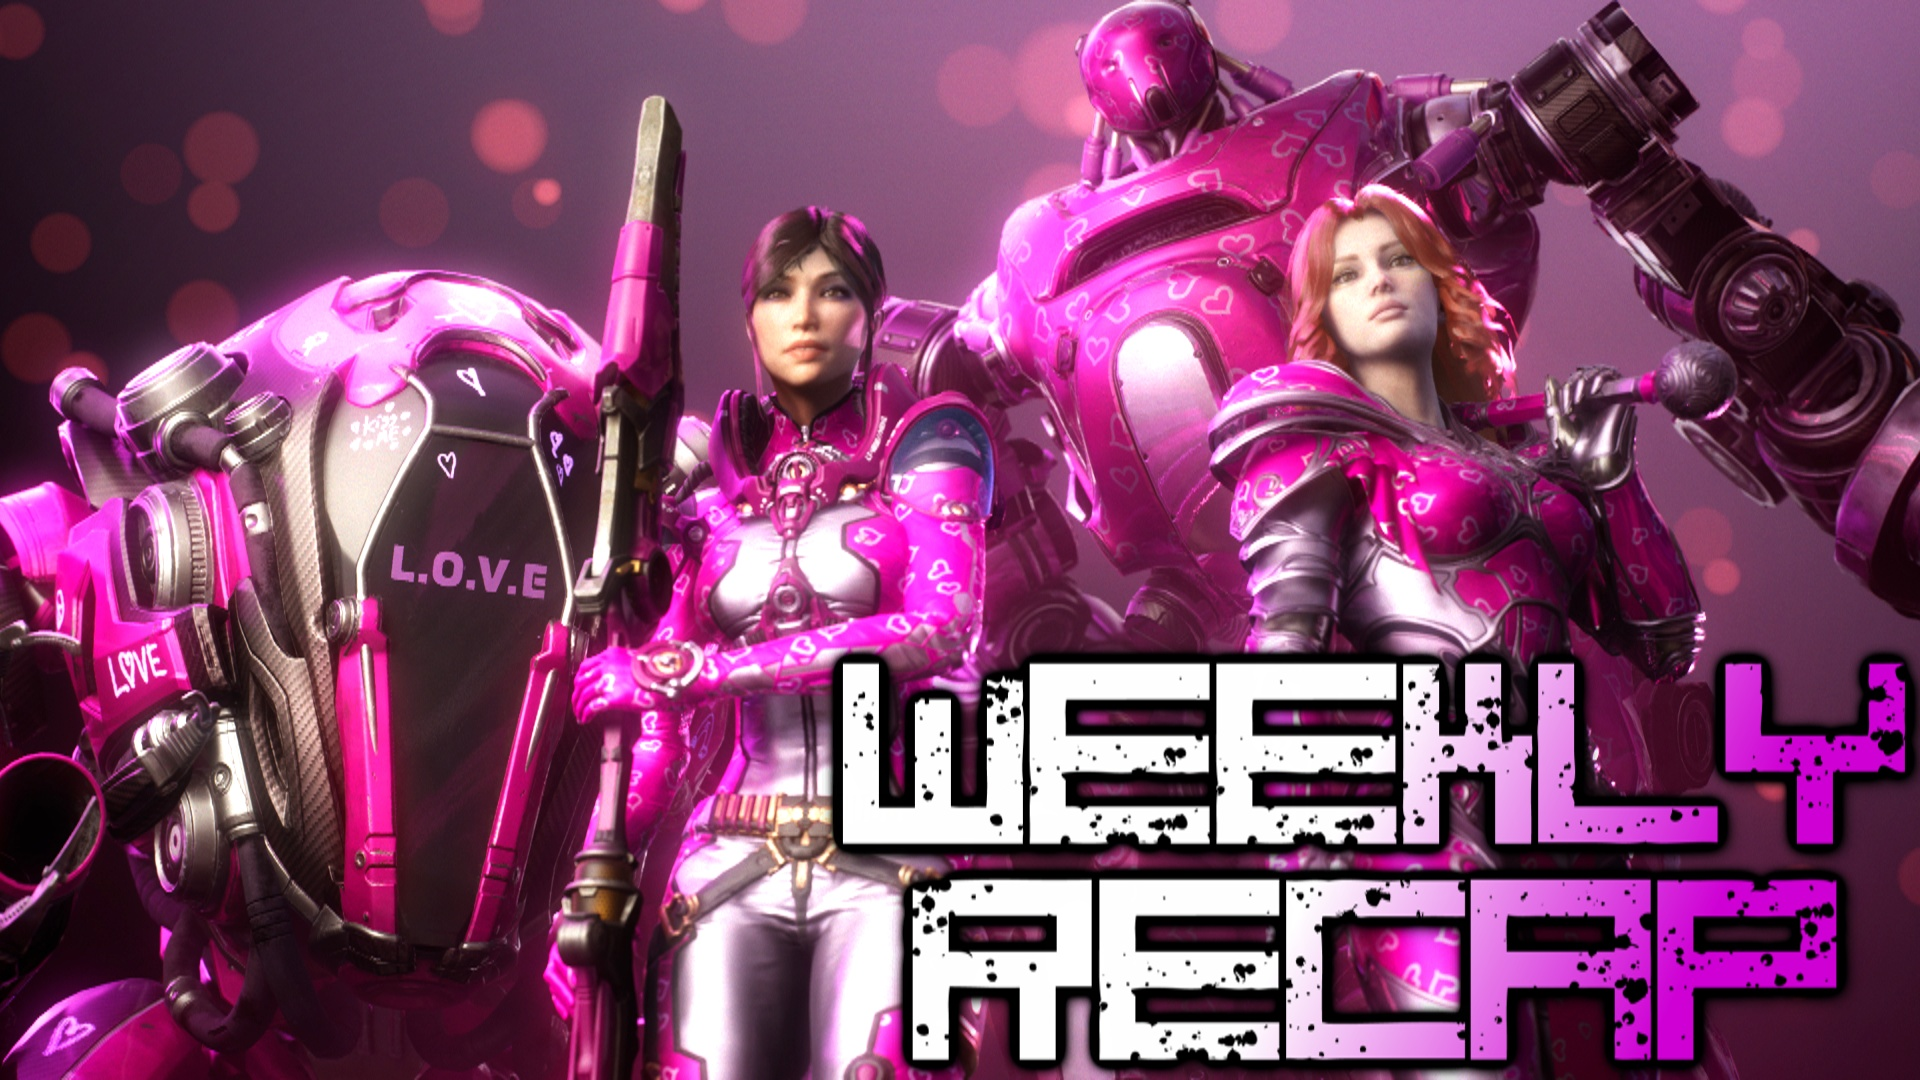 Weekly Gaming Recap #11 Feb. 13th